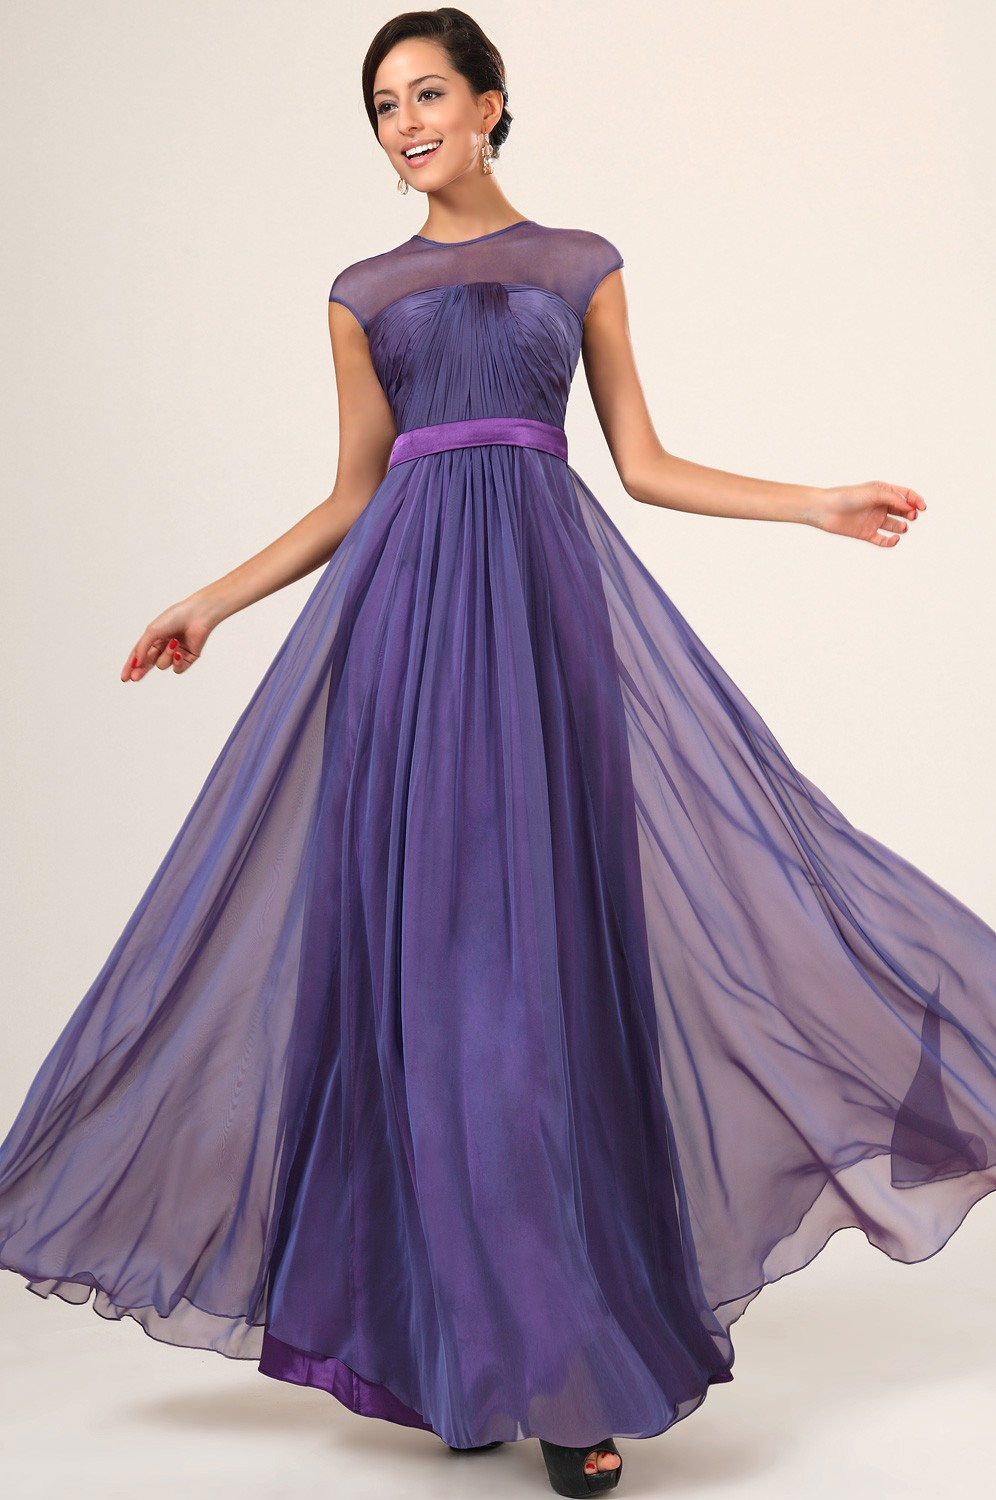 See Through Back Purple Bridesmaid Dress To Party Chiffon Special ...